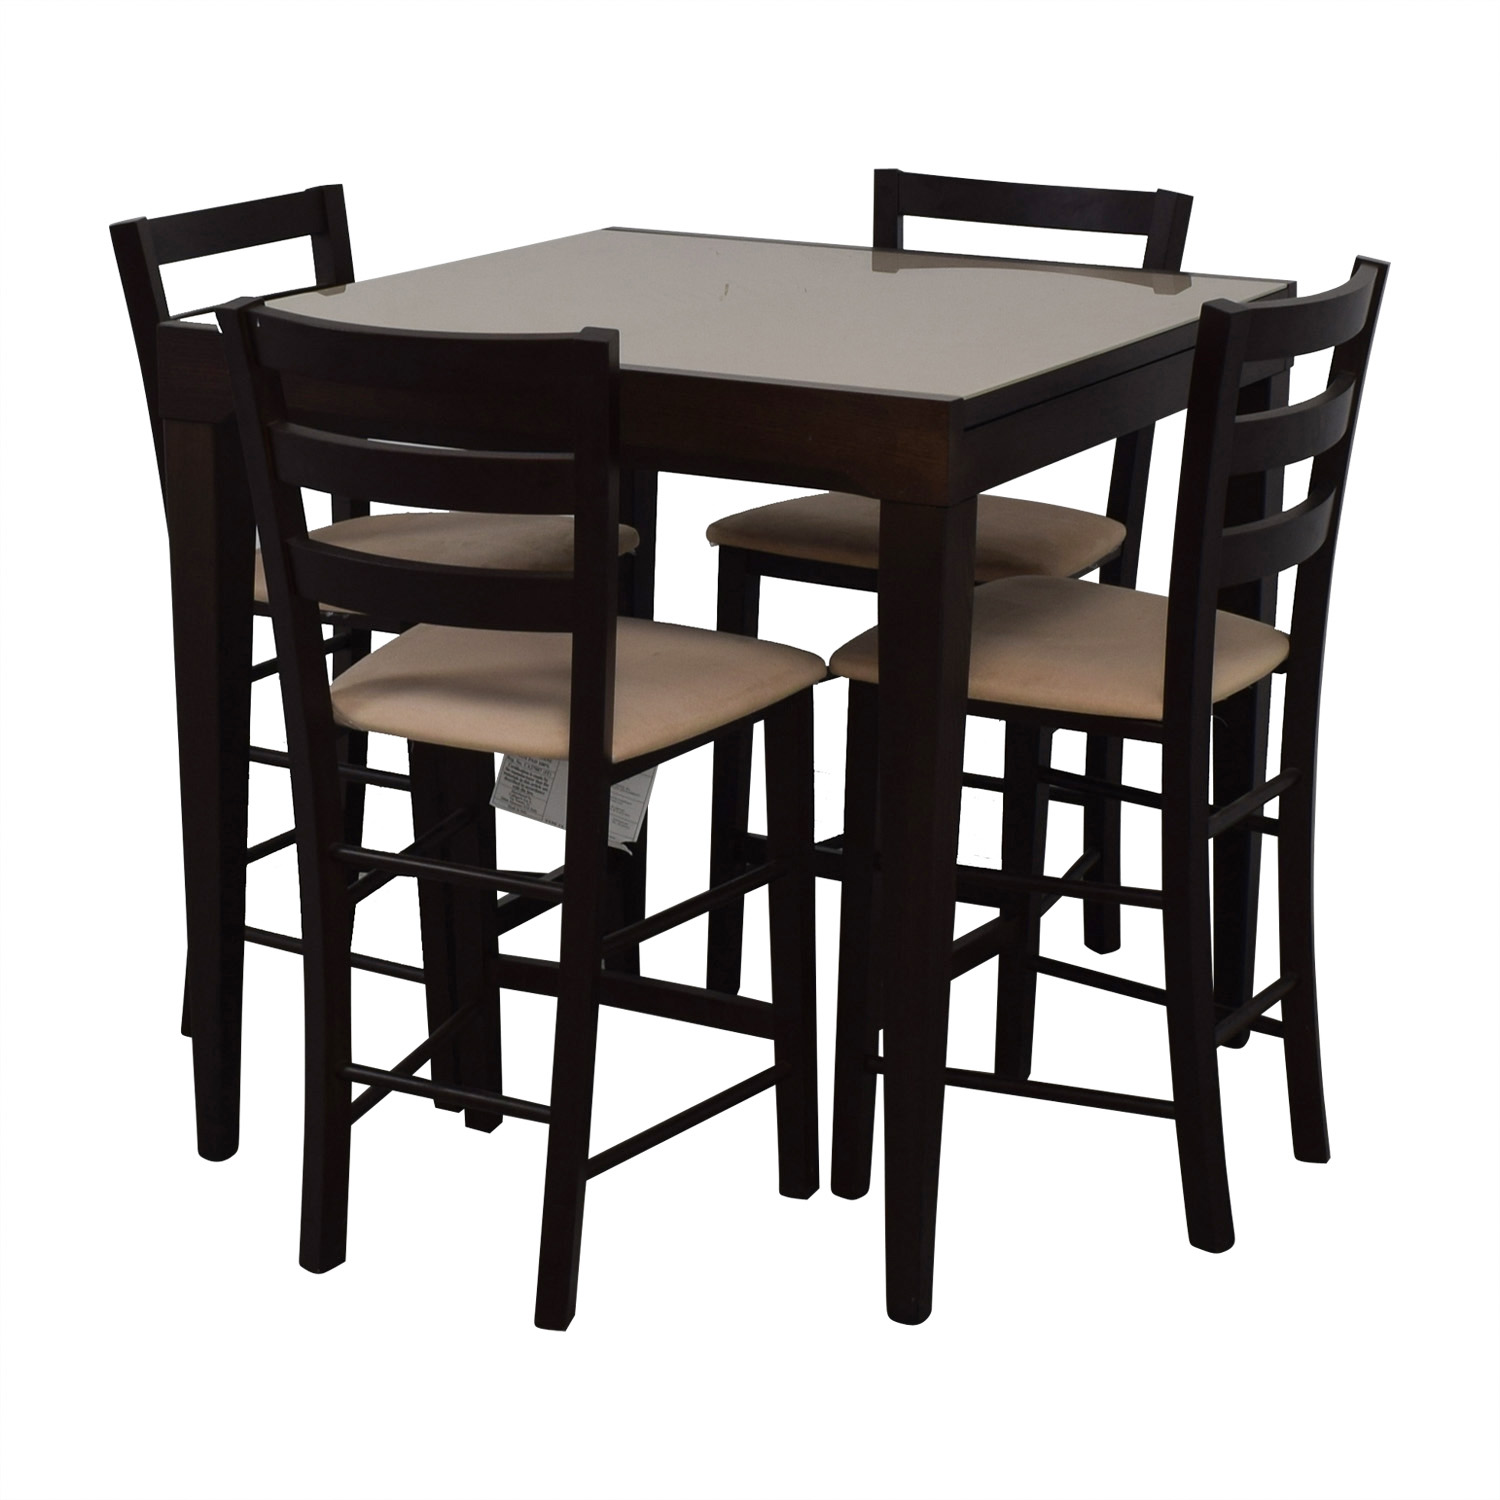 Calligaris Calligaris Extendable Dining Set on sale